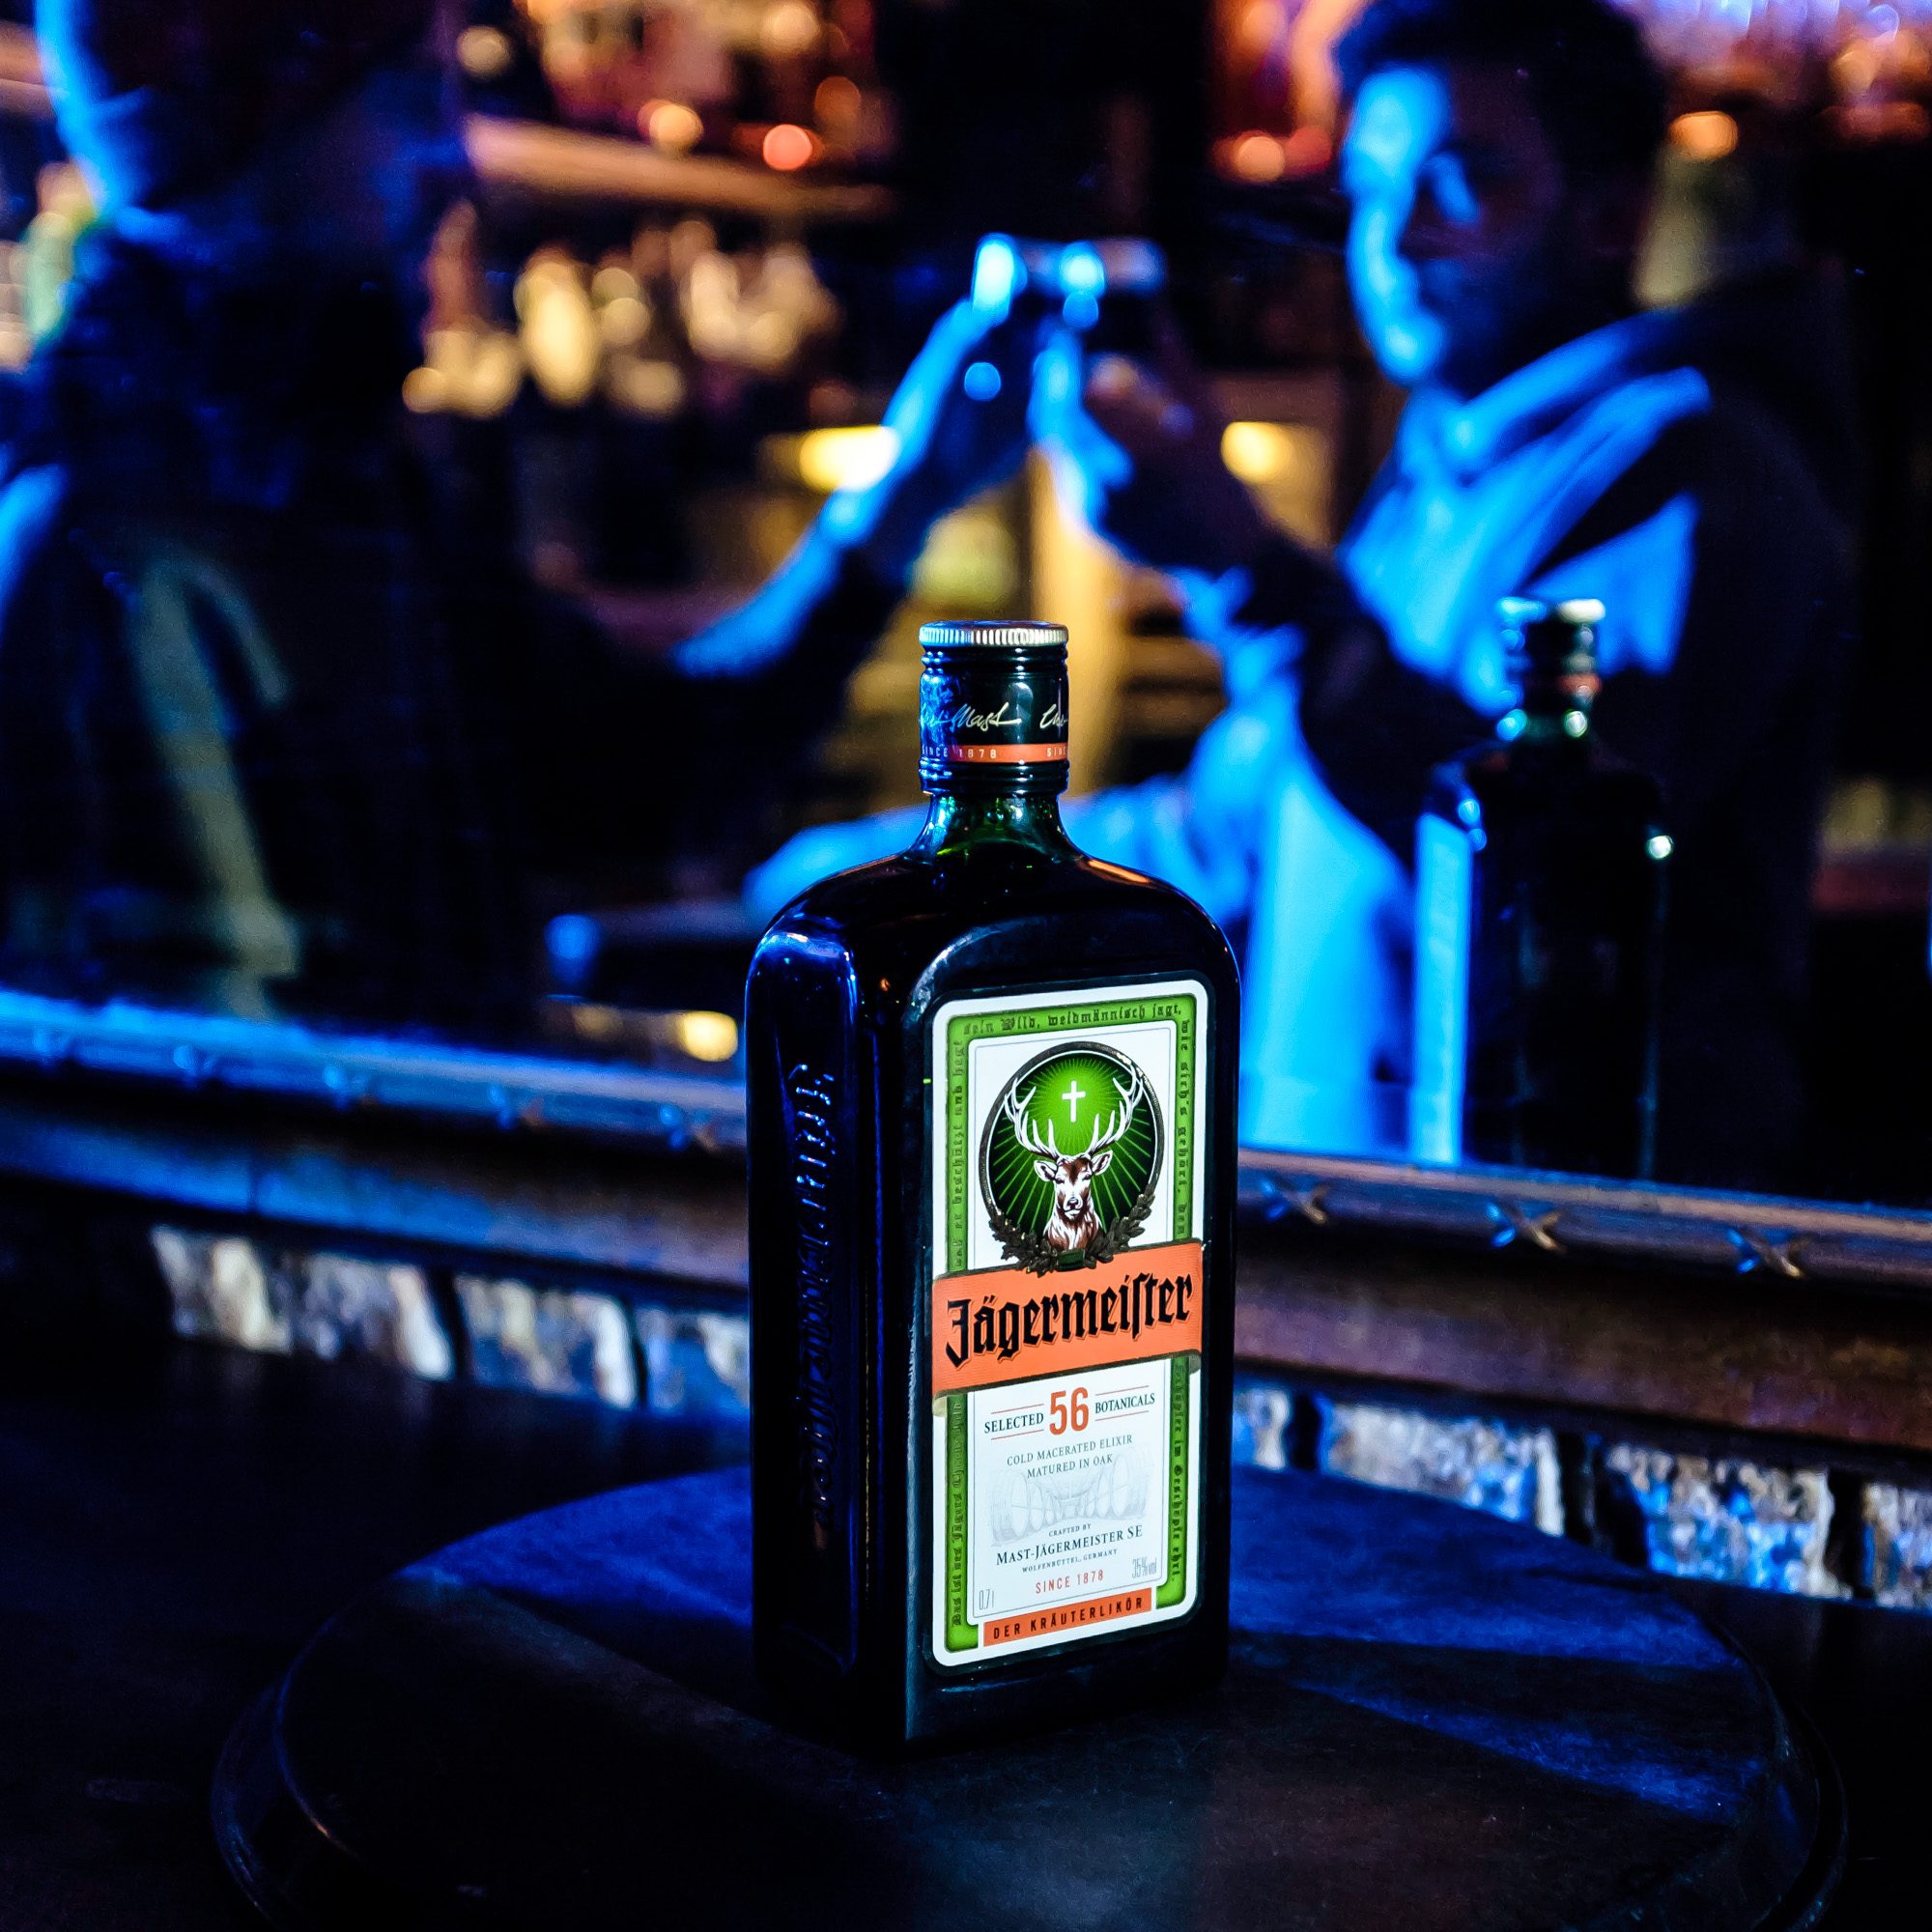 Jager-2